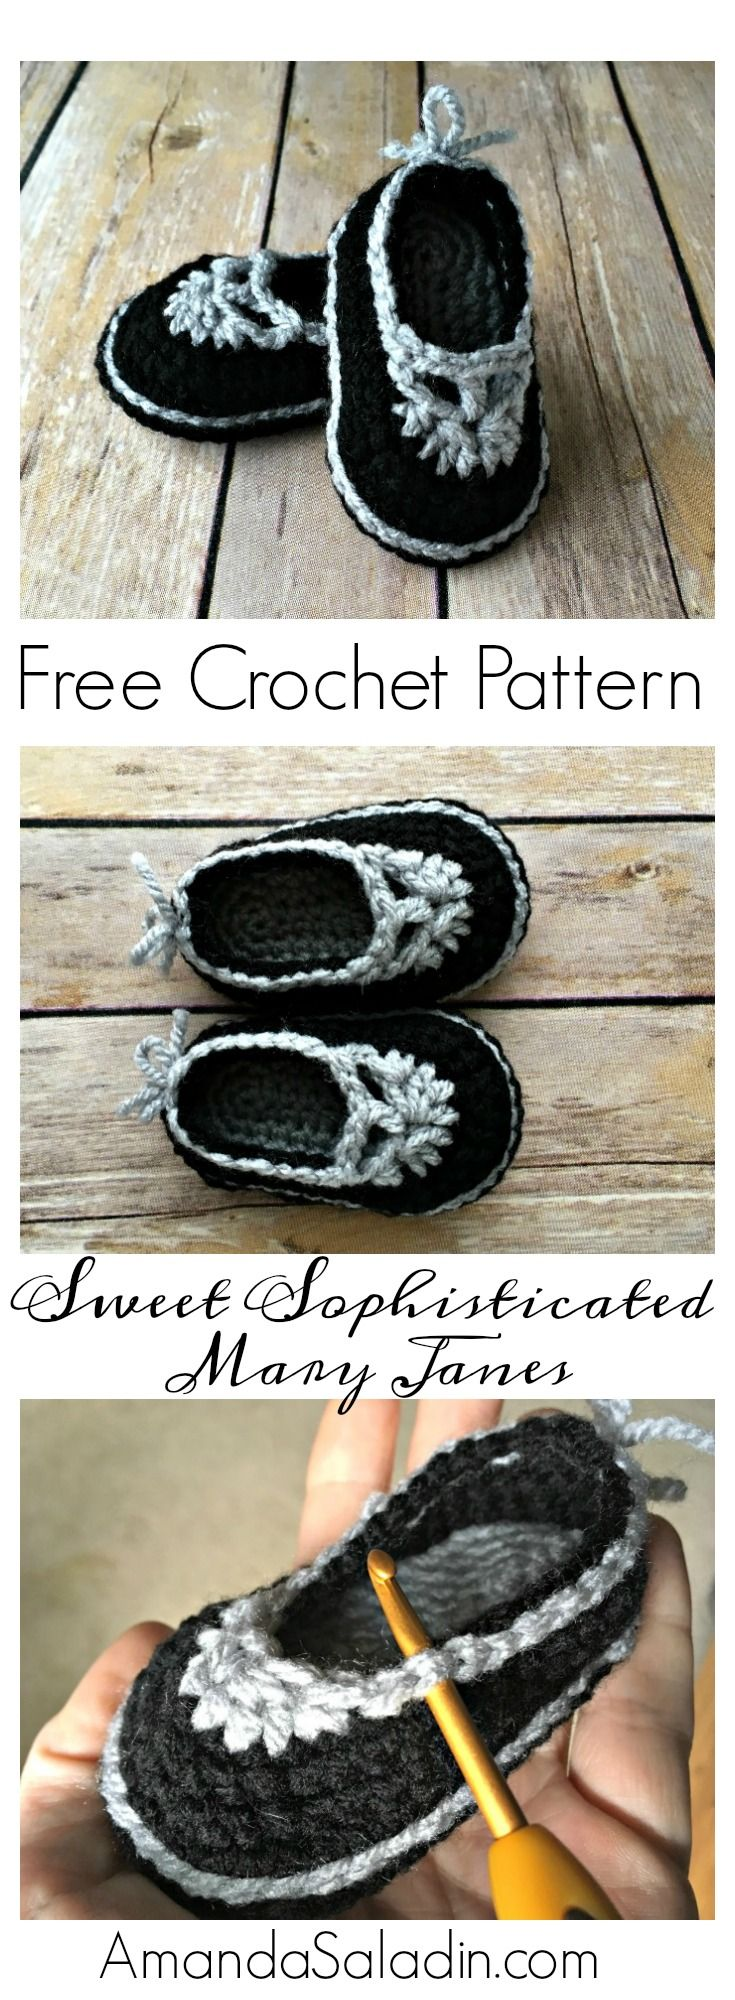 One of this week's Featured Favorites at the Tuesday PIN-spiration Link Party: Free Crochet Pattern - Mary Jane Baby Booties Get your copy of the free pattern right here: